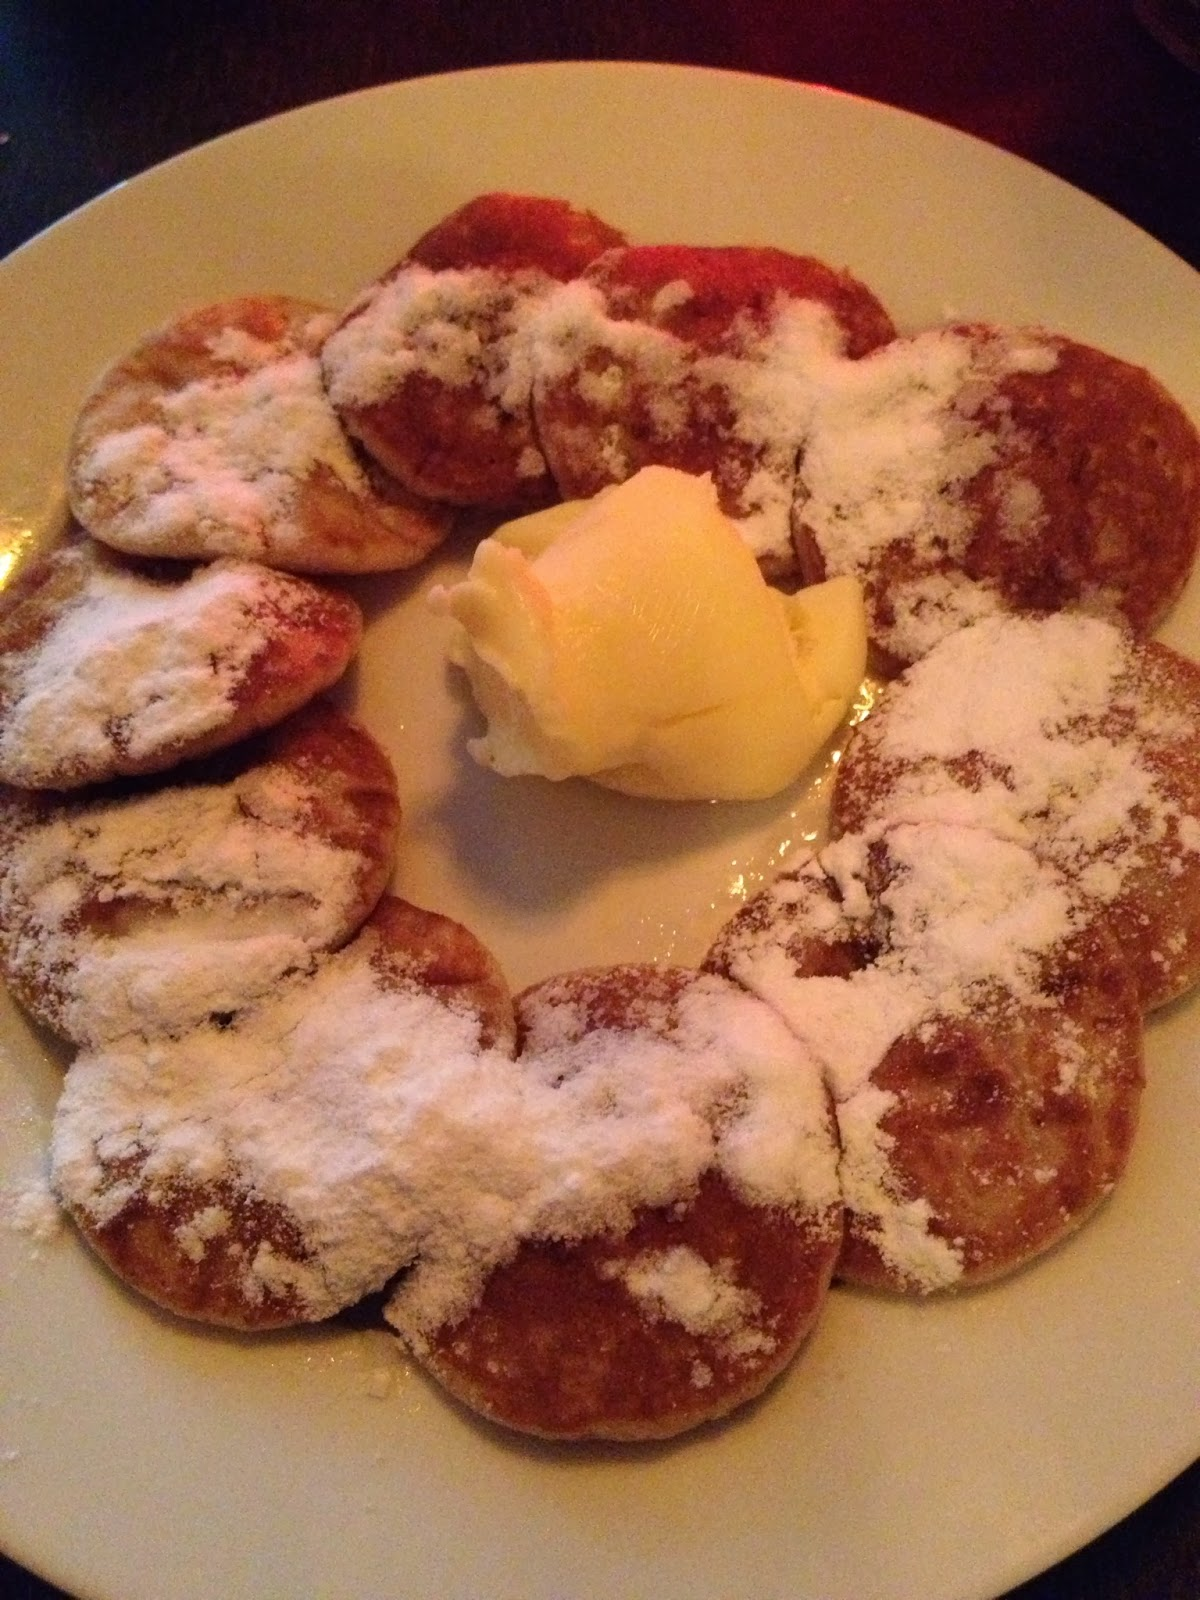 Amsterdam - Tiny pancakes with butter and powdered sugar